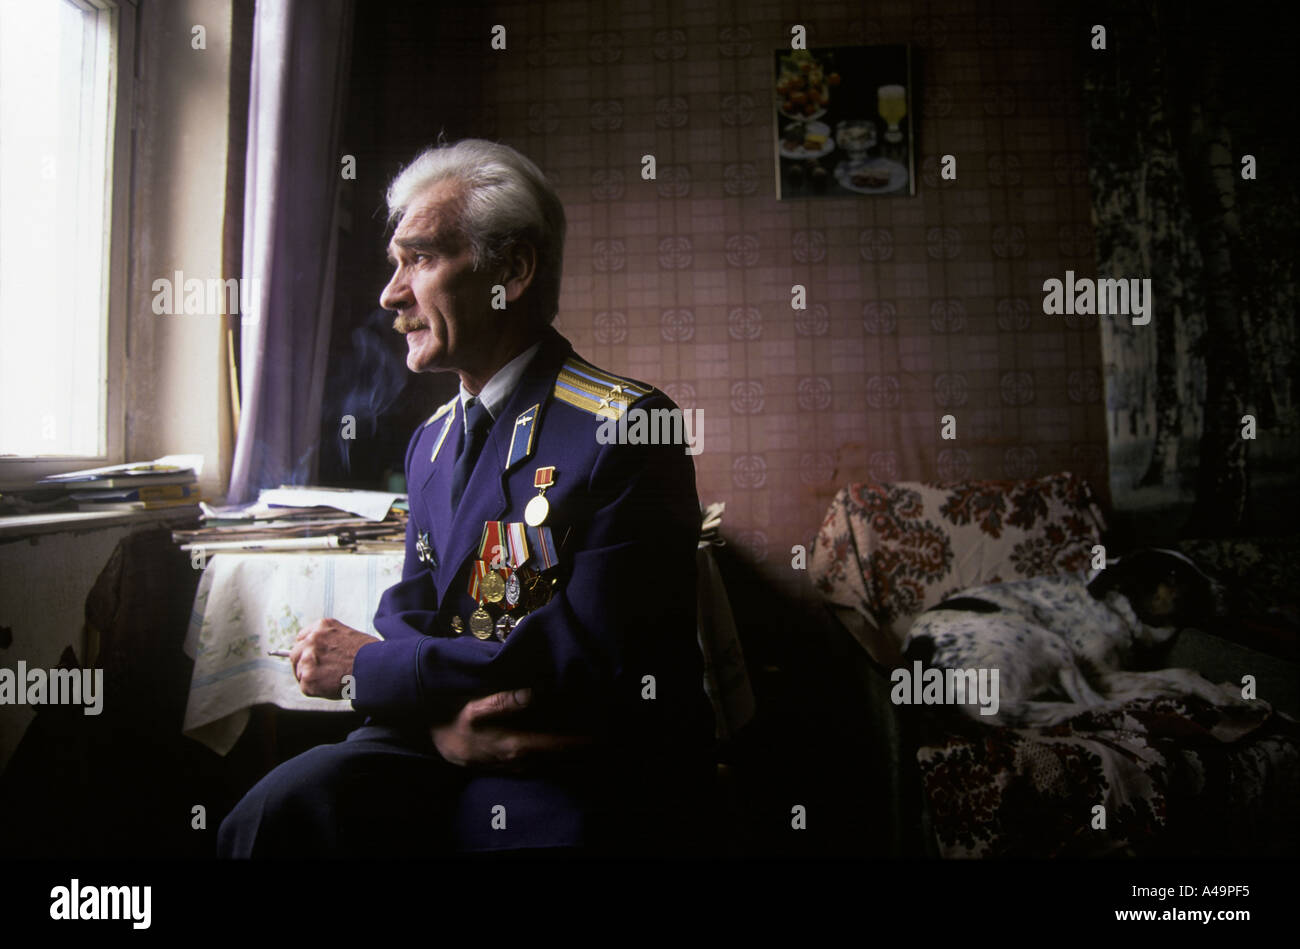 man who saved the earth stanislav petrov former soviet military prevented potential nuclear launch wearing uniform - Stock Image